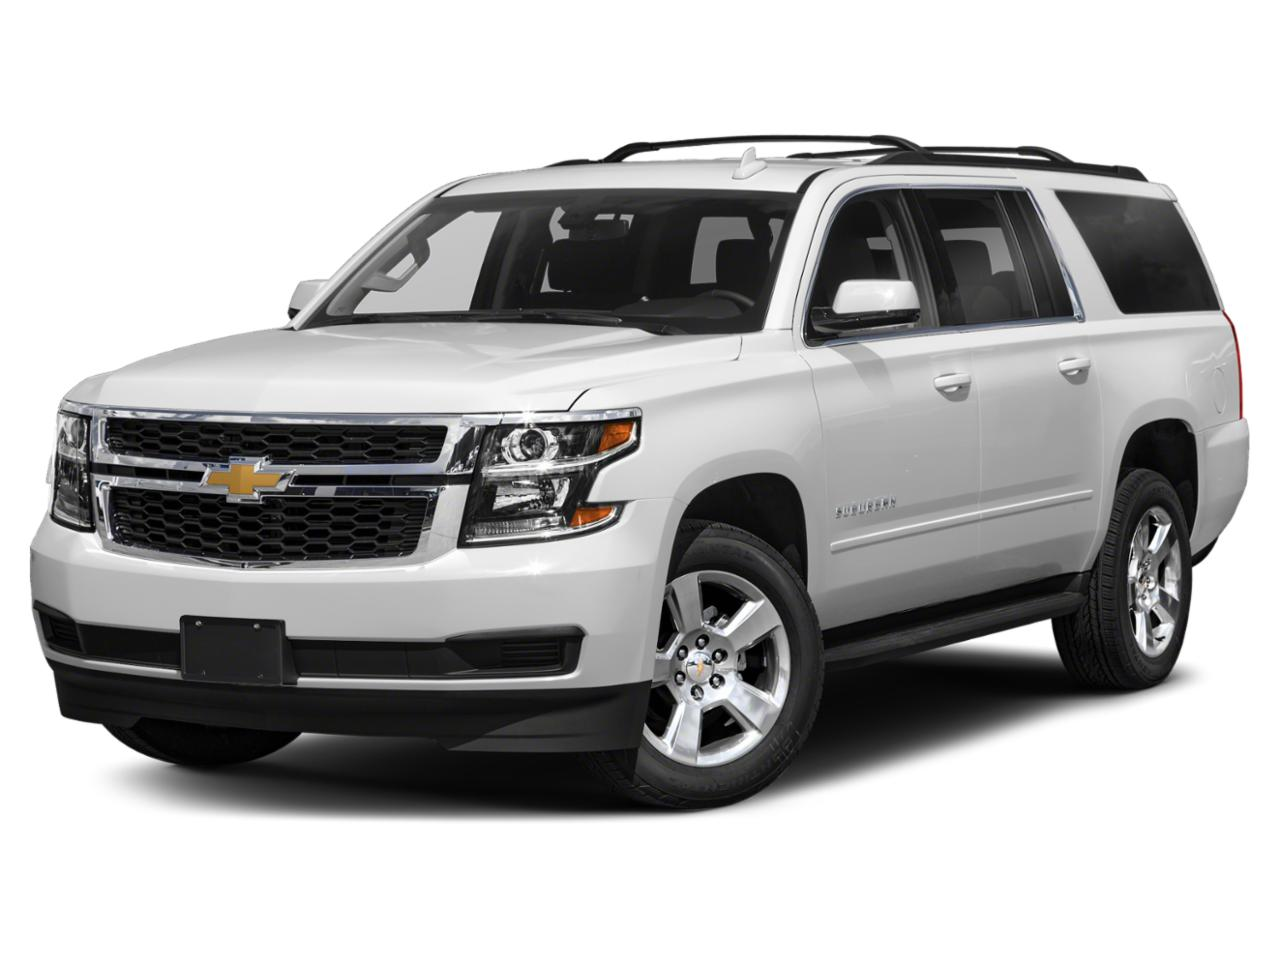 2020 Chevrolet Suburban Vehicle Photo in Glenview, IL 60025